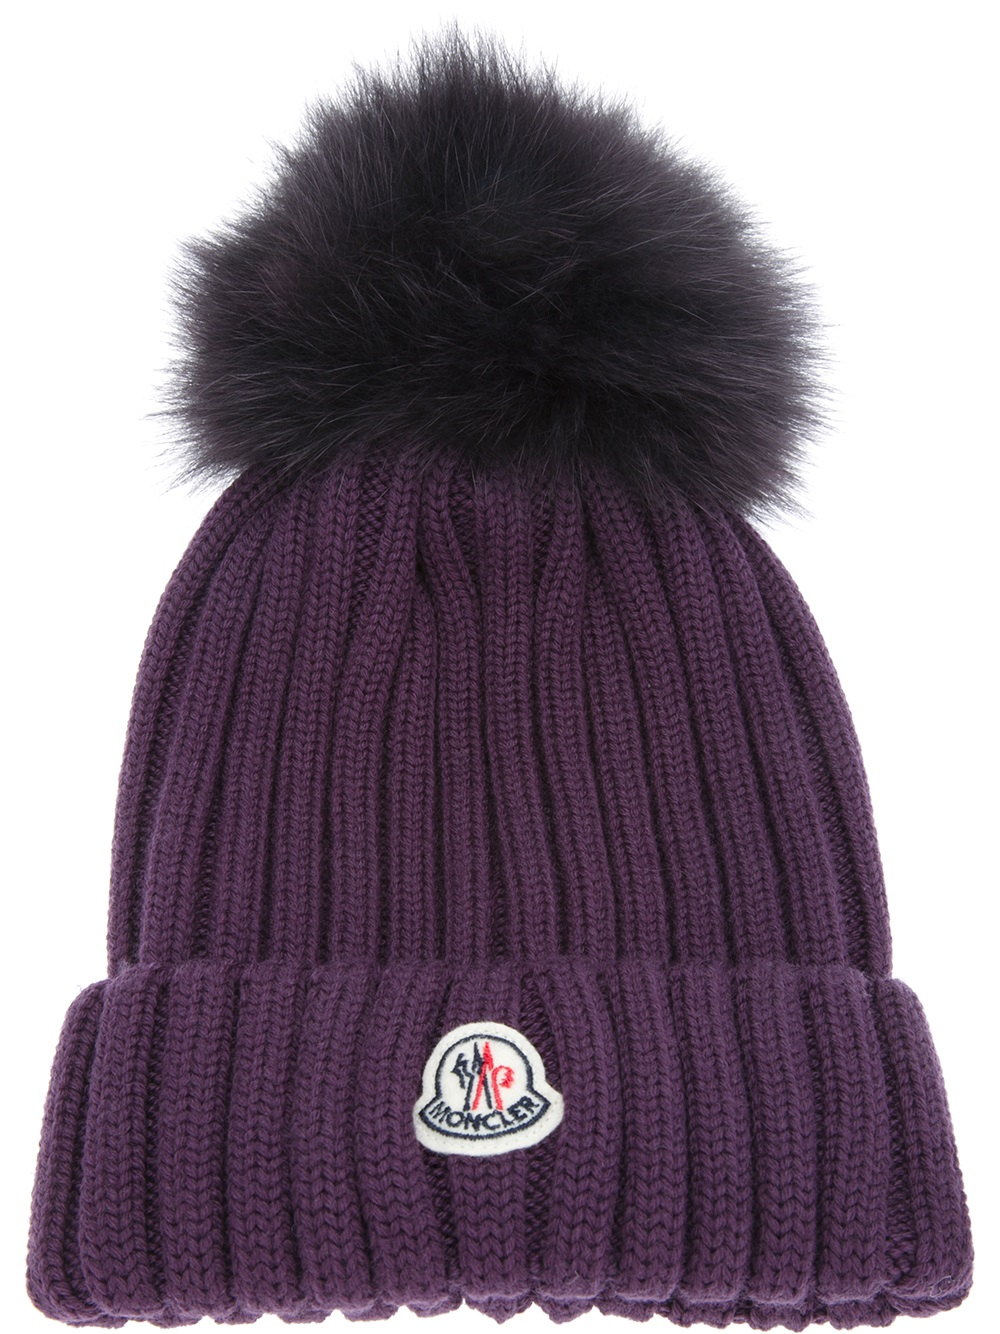 c481984c841 Lyst - Moncler Ribbed Knit Beanie Hat in Purple